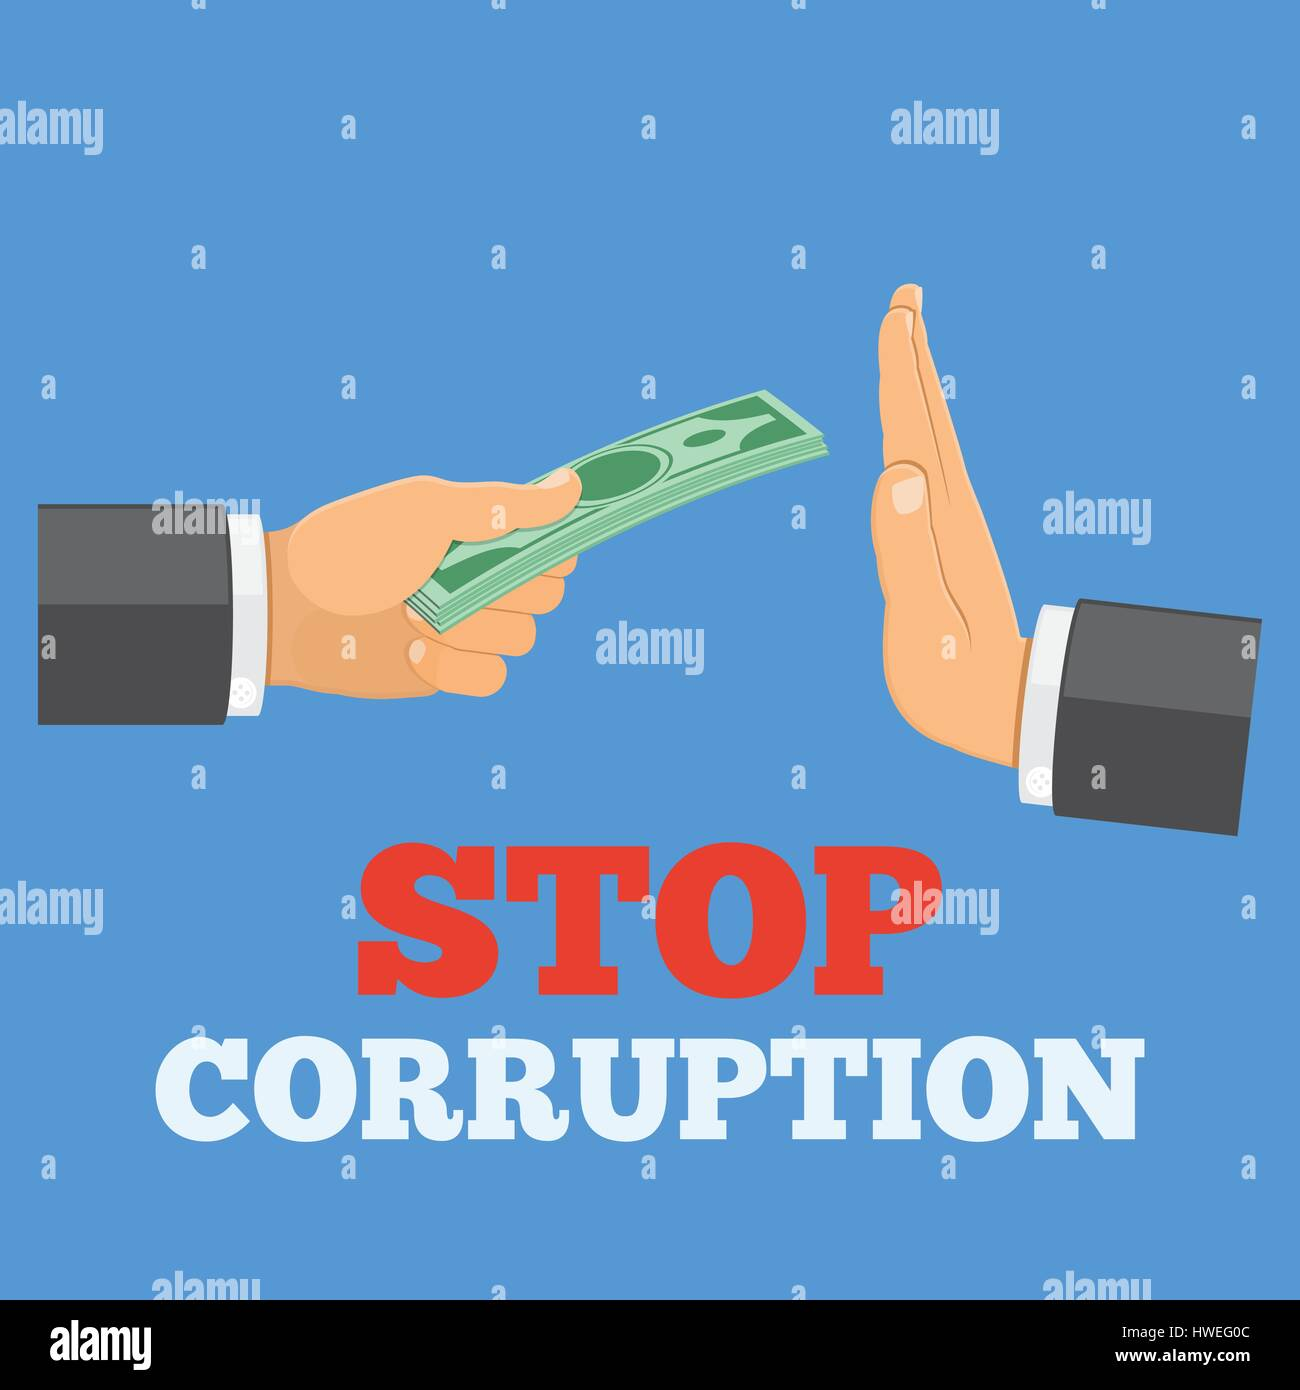 stop corruption concept - Stock Image